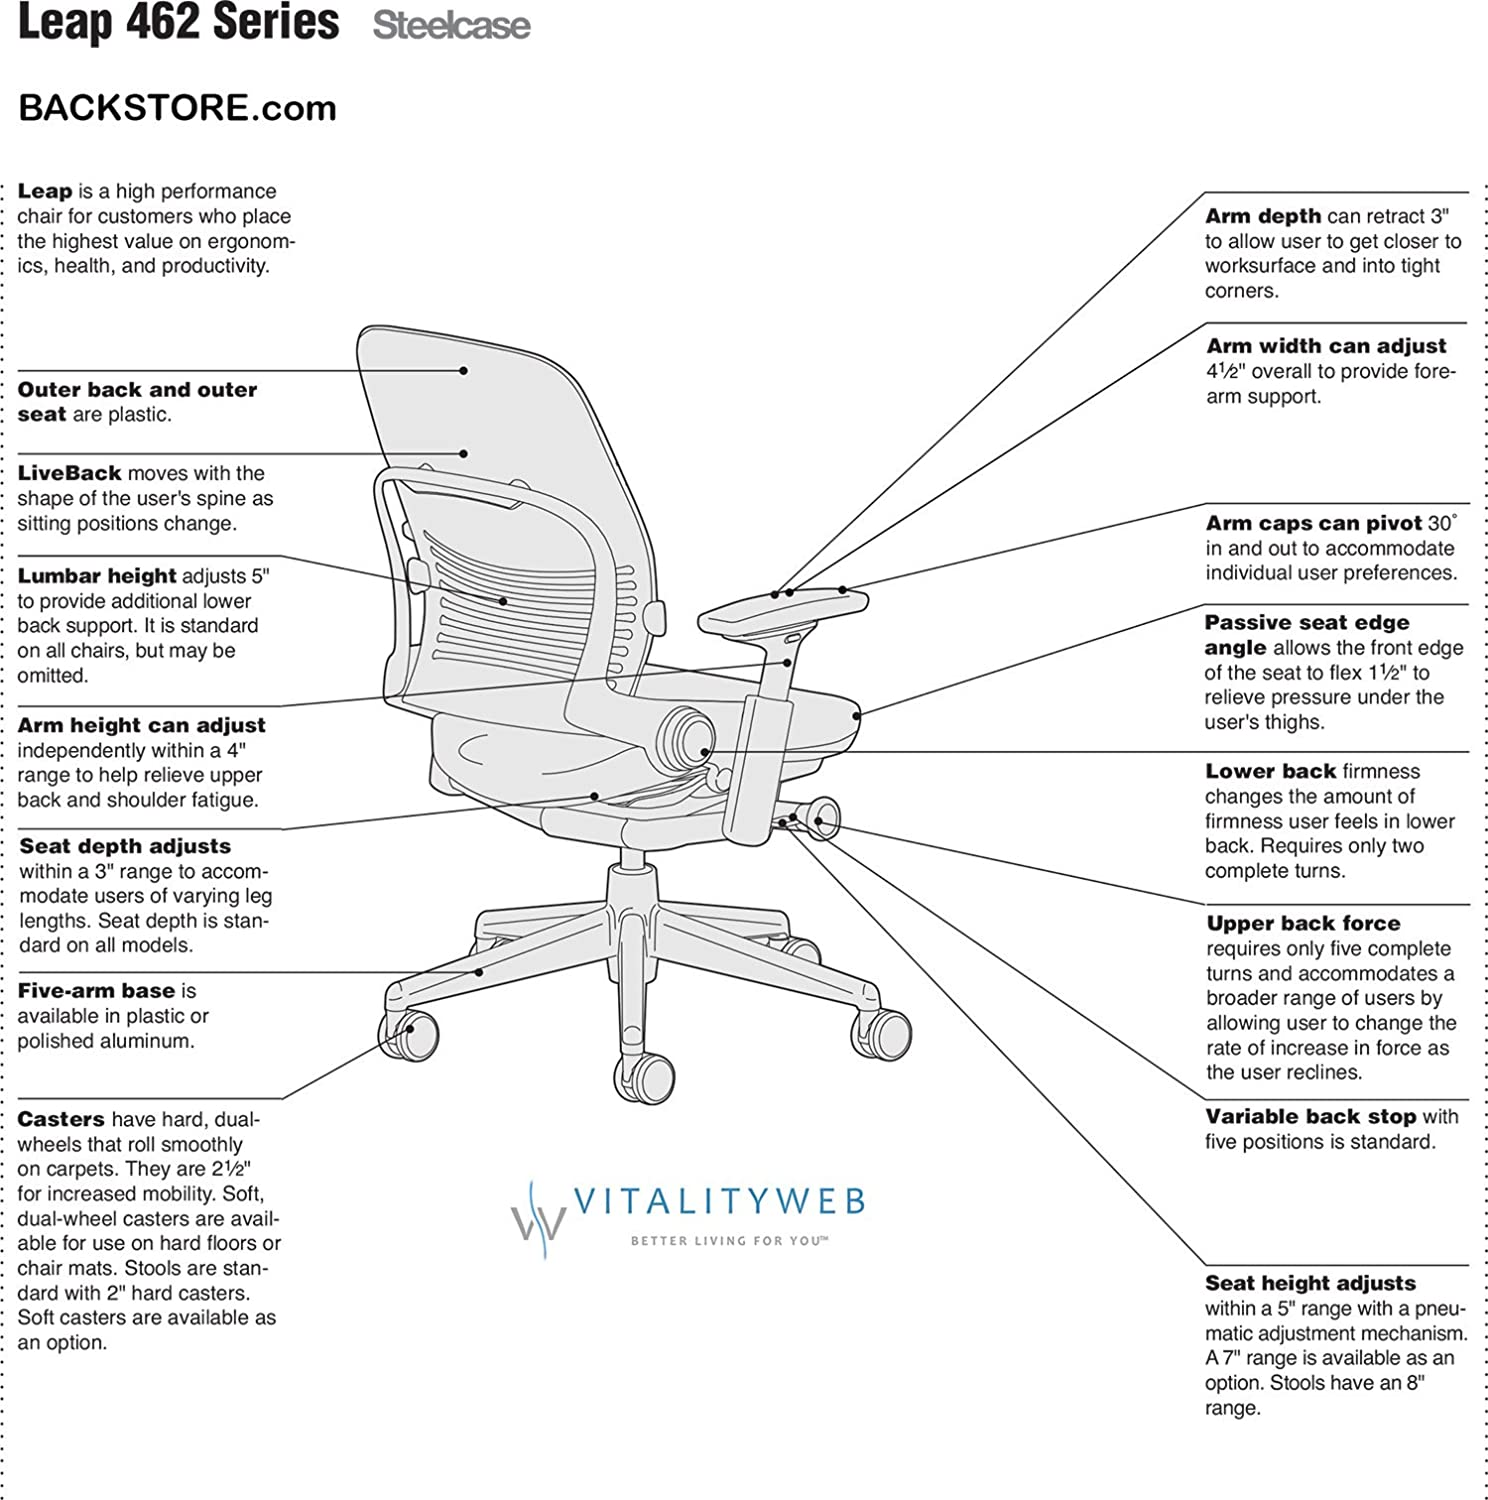 amazoncom steelcase leap desk chair with headrest in buzz2 black fabric highly adjustable arms black frame and base standard carpet casters kitchen buzz2 upholstery fabric